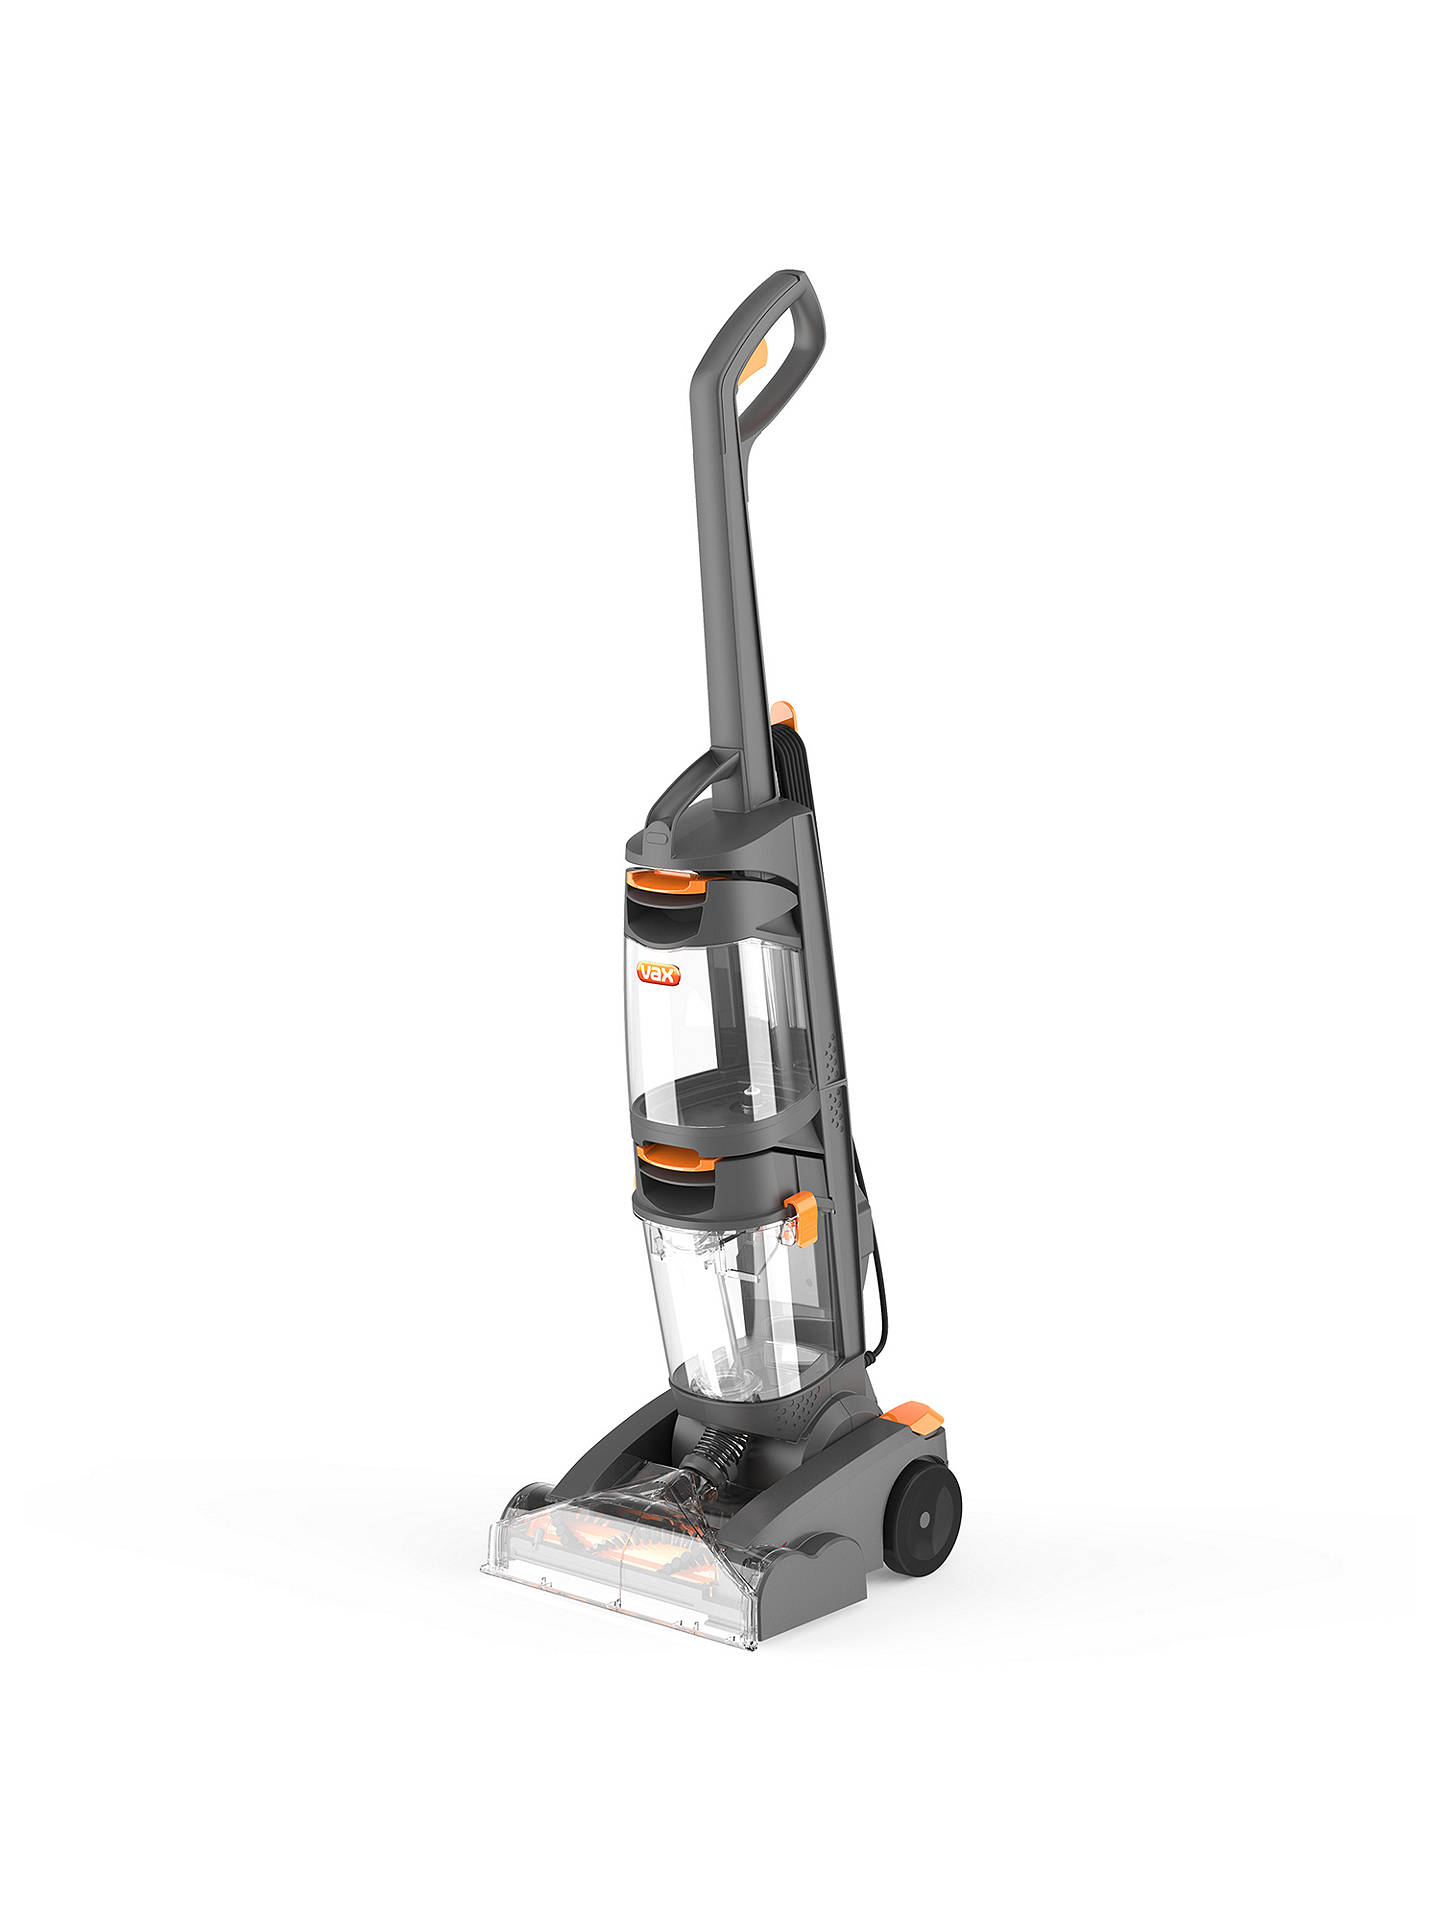 Vax W86-DP-B Dual Power Carpet Cleaner at John Lewis